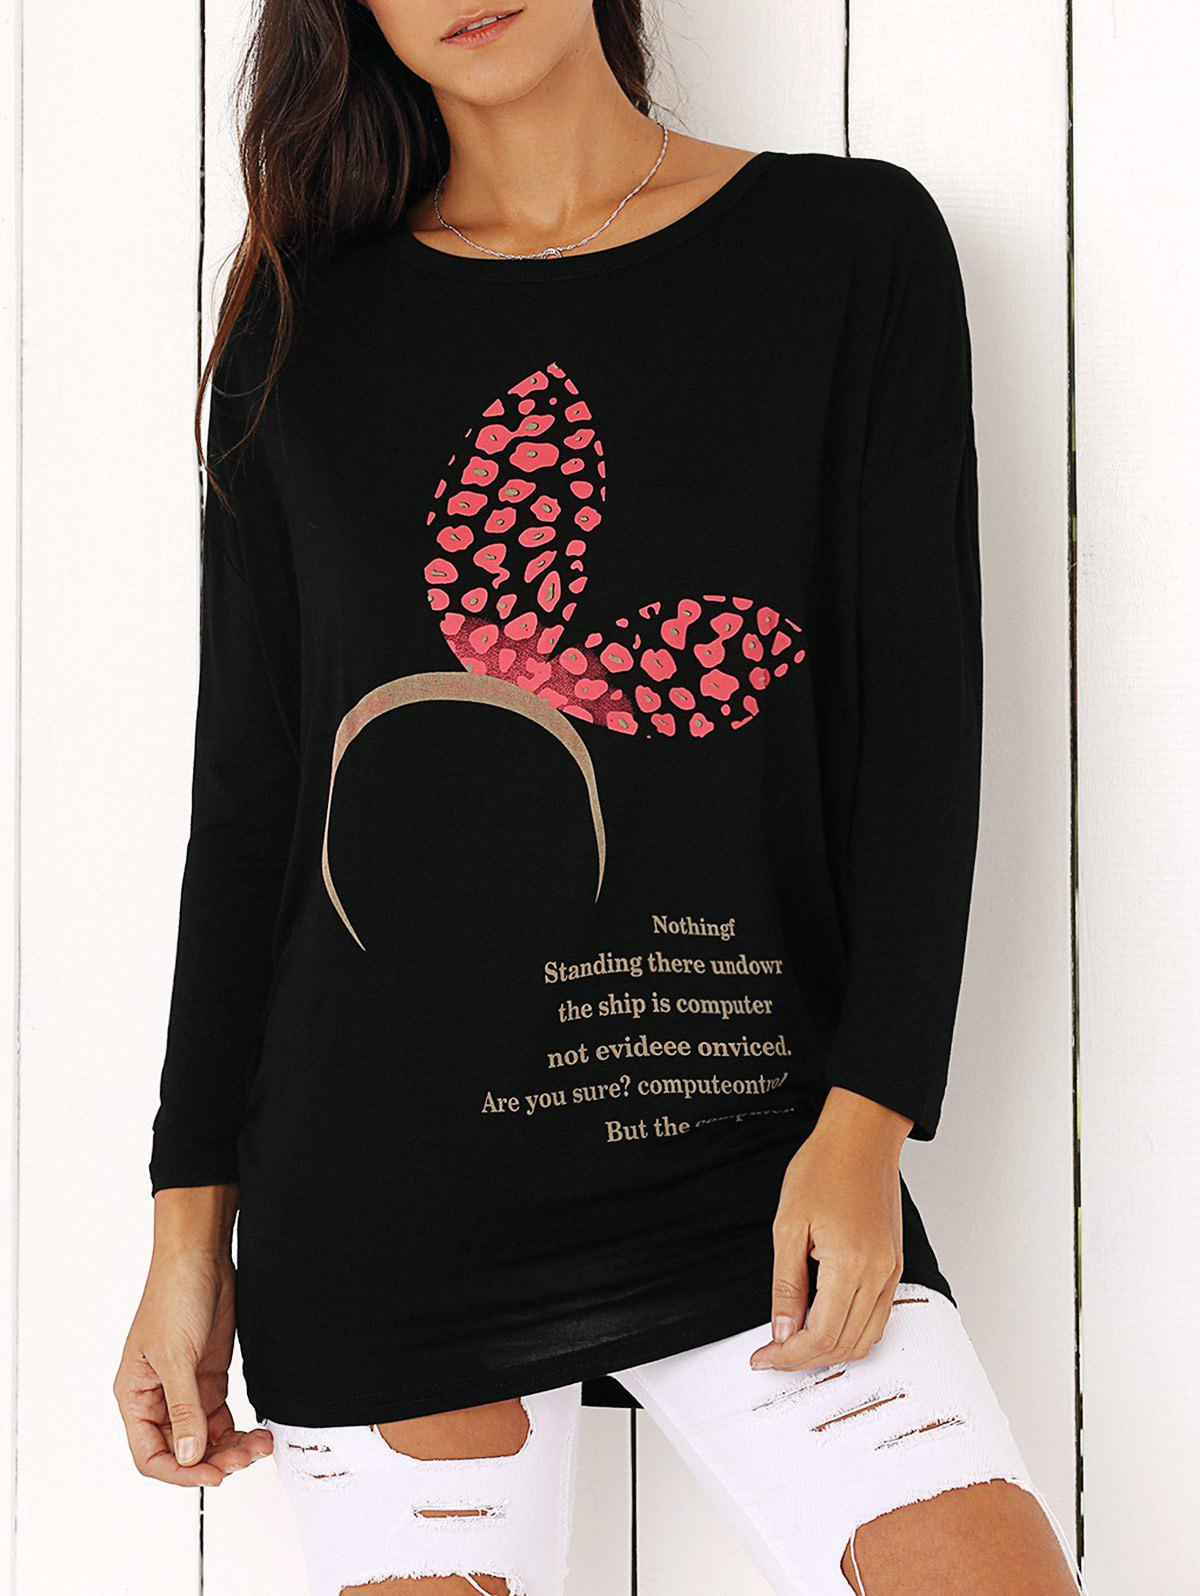 Cute Printed Loose Fitting Top For Women